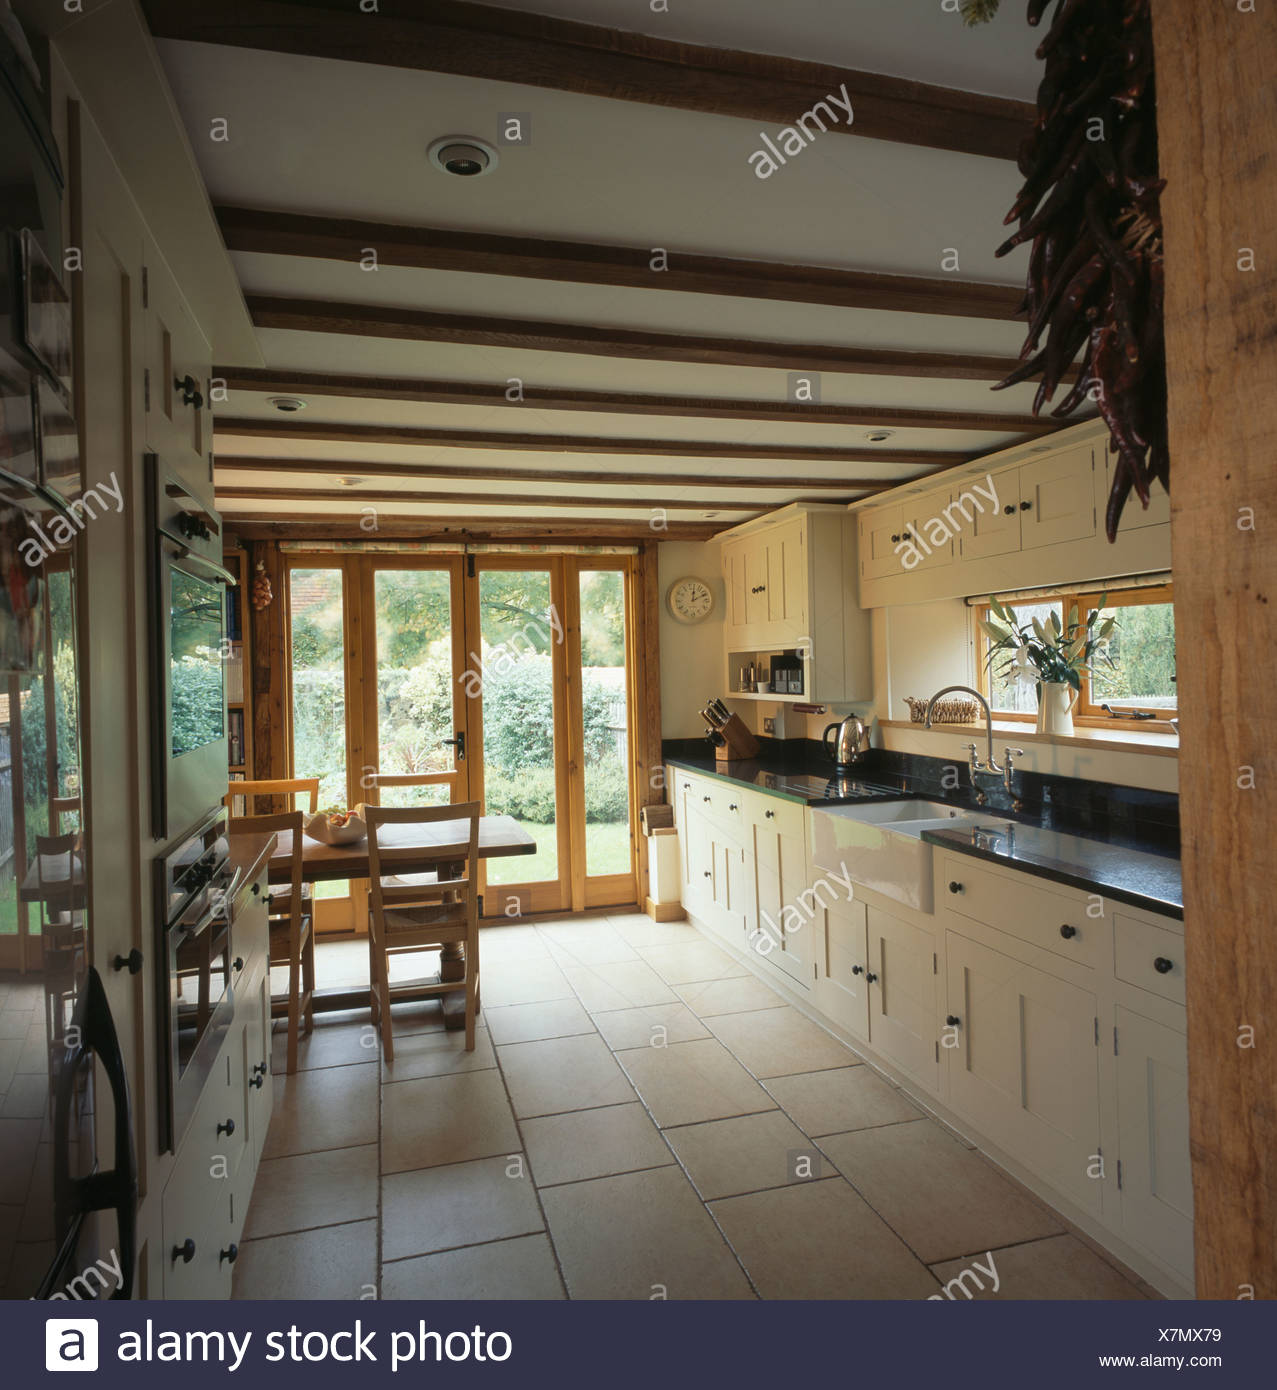 Floor Beams Stockfotos & Floor Beams Bilder - Seite 2 - Alamy